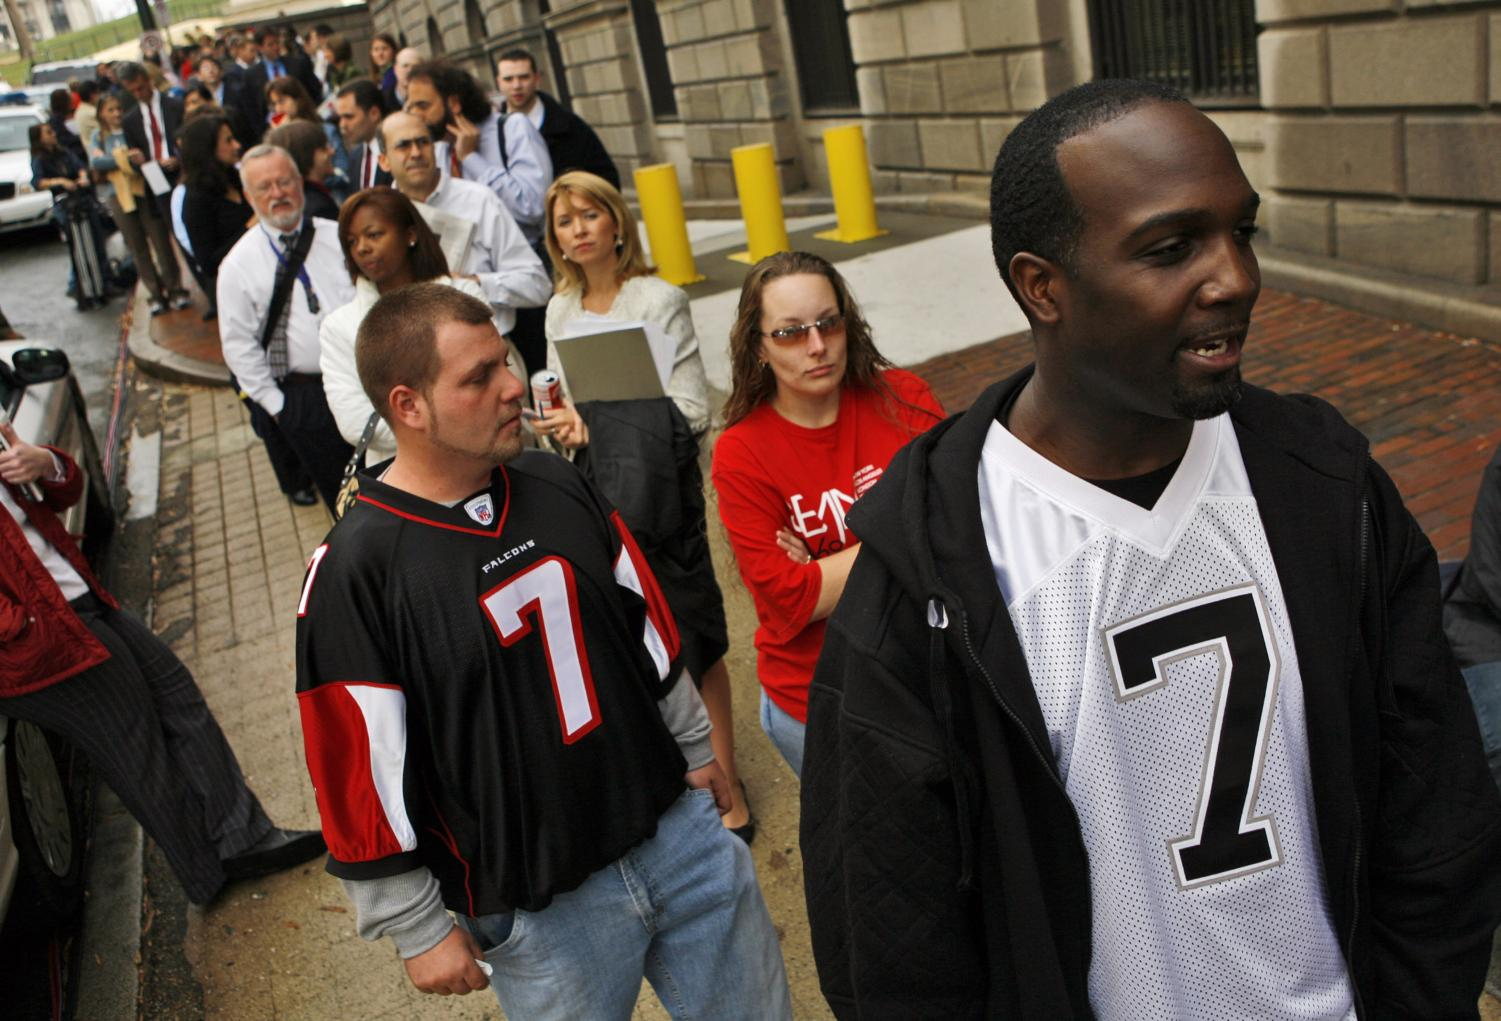 Five Falcons fined for displaying Michael Vick messages - The Chimes